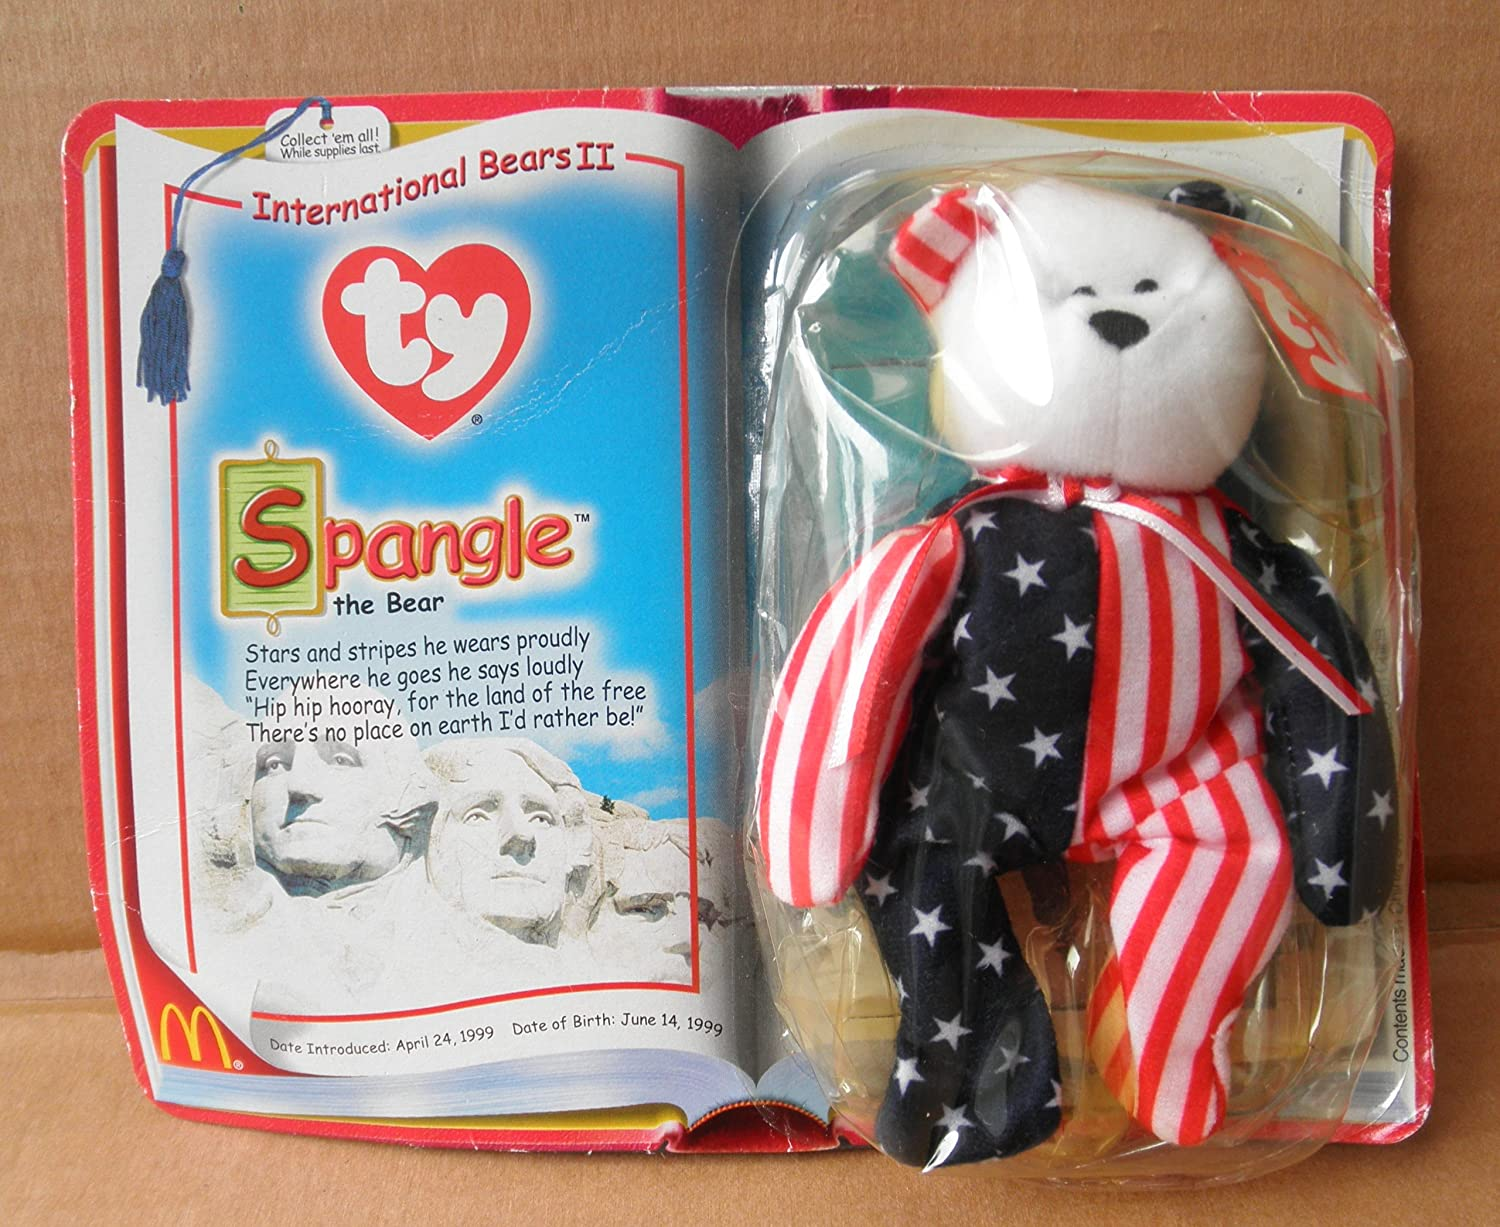 Amazon.com  McDonalds Collectible TY Beanie Babies Spangle the Bear Stuffed  Animal Plush Toy - White Red stripes and Blue and White Stars  Office  Products 571a1e6dea